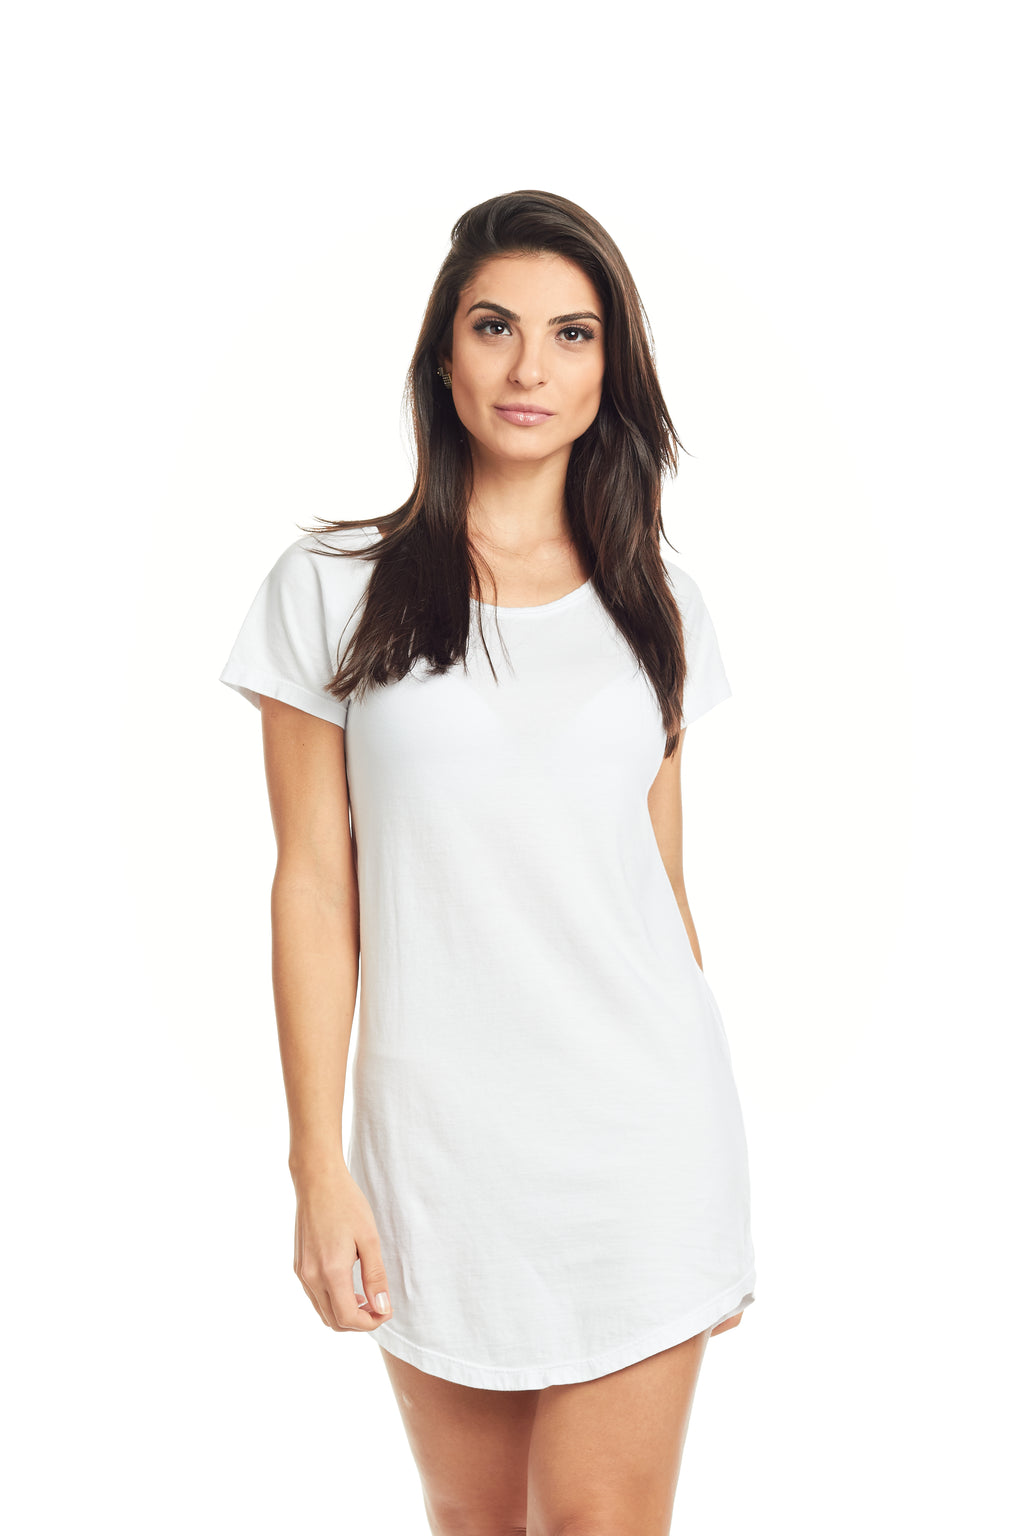 CAMISETA FEMININA LONG ESTAMPADA - BOSSA COSTAS